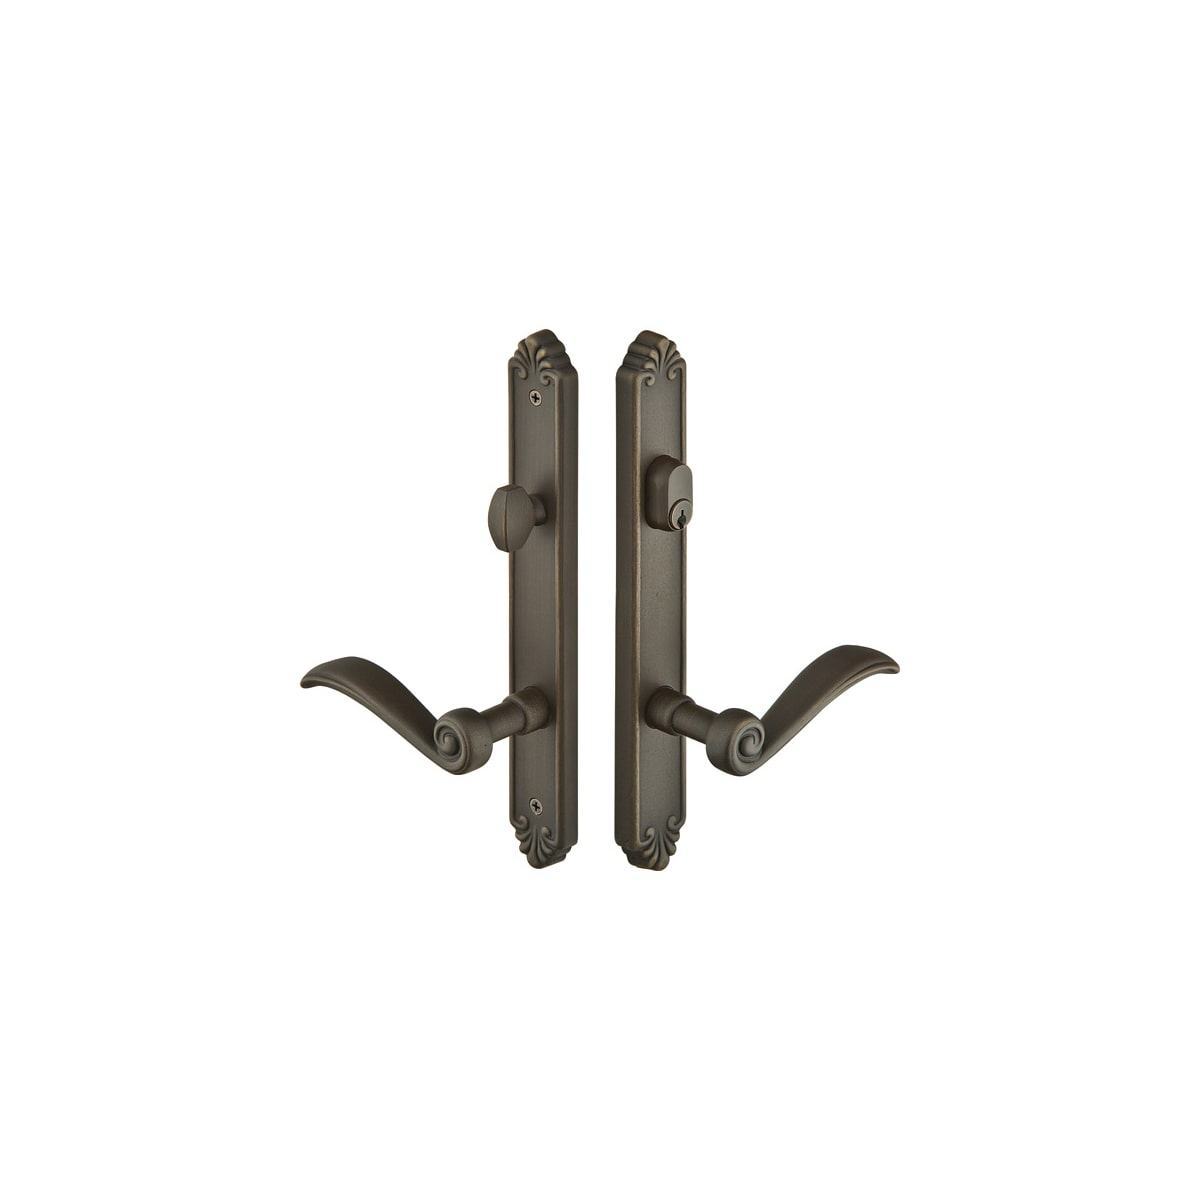 Emtek Lost Wax / Tuscany Bronze Door Configuration 3 Passage Multi Point Trim Lever Set with American Cylinder Above Handle